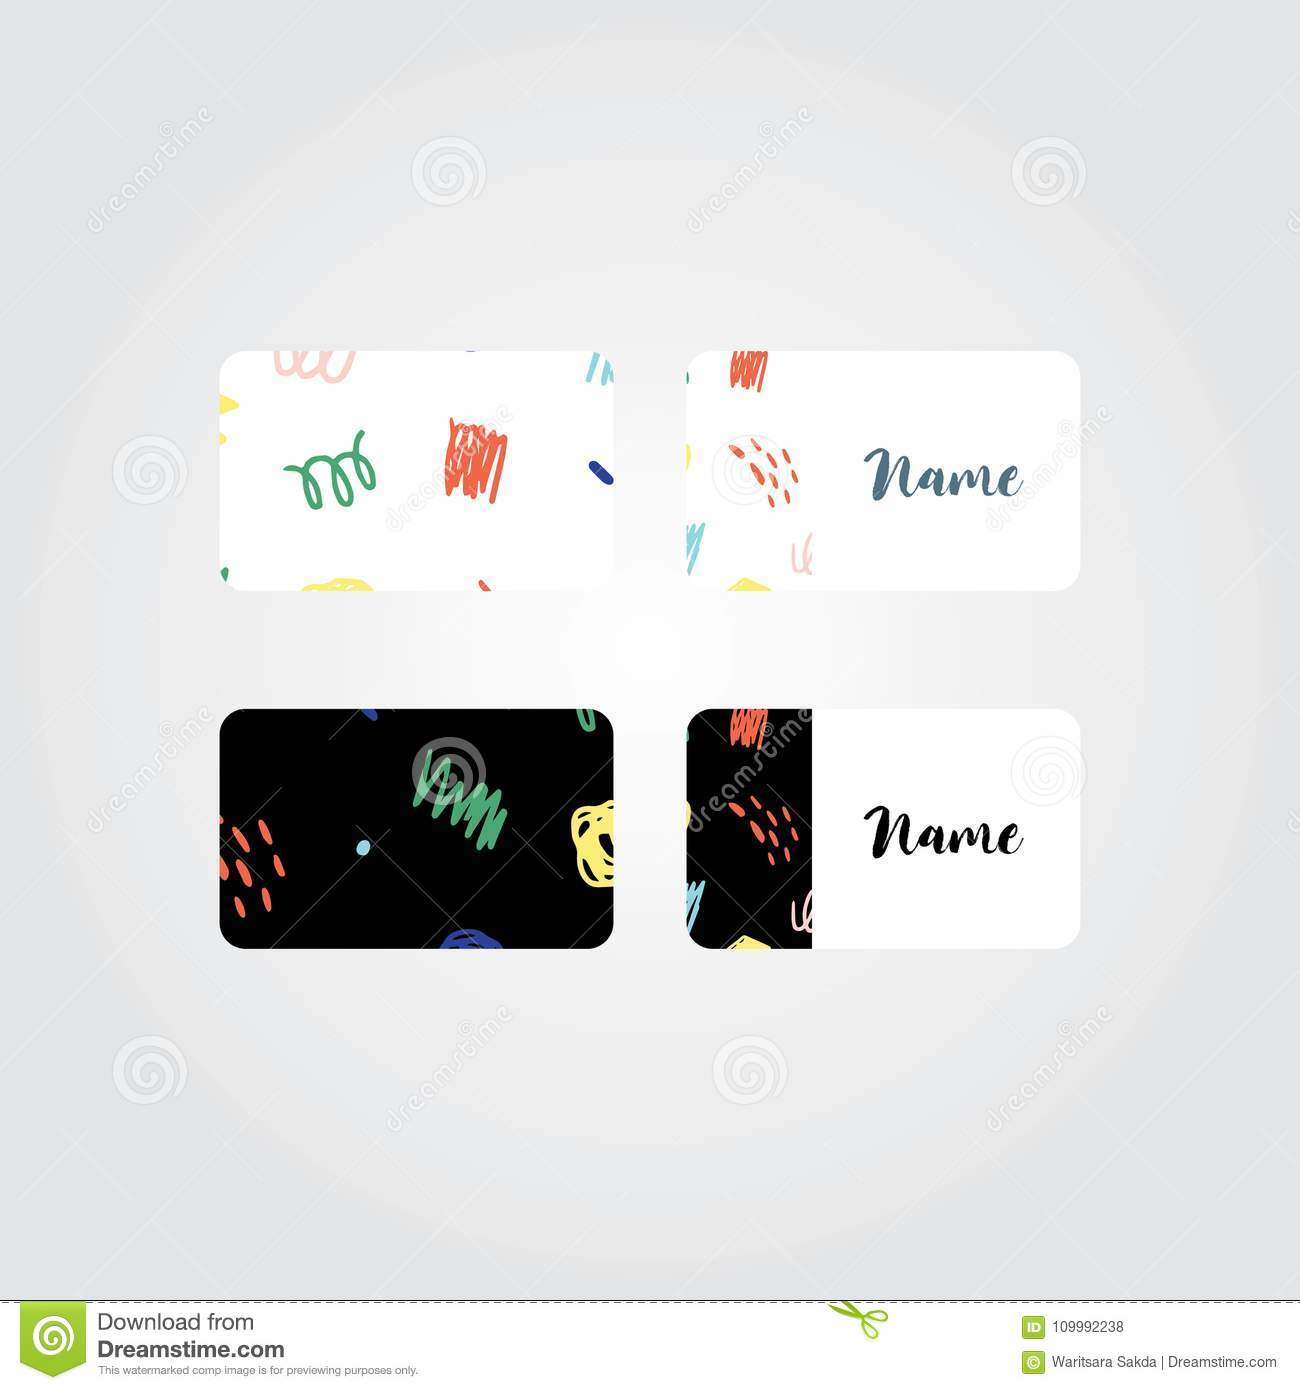 Must see Wallpaper Name Style - name-card-vector-business-card-doodle-pattern-illustration-minimal-cartoon-style-abstract-doodle-wallpaper-hand-drawn-vector-109992238  Pictures_172553.jpg